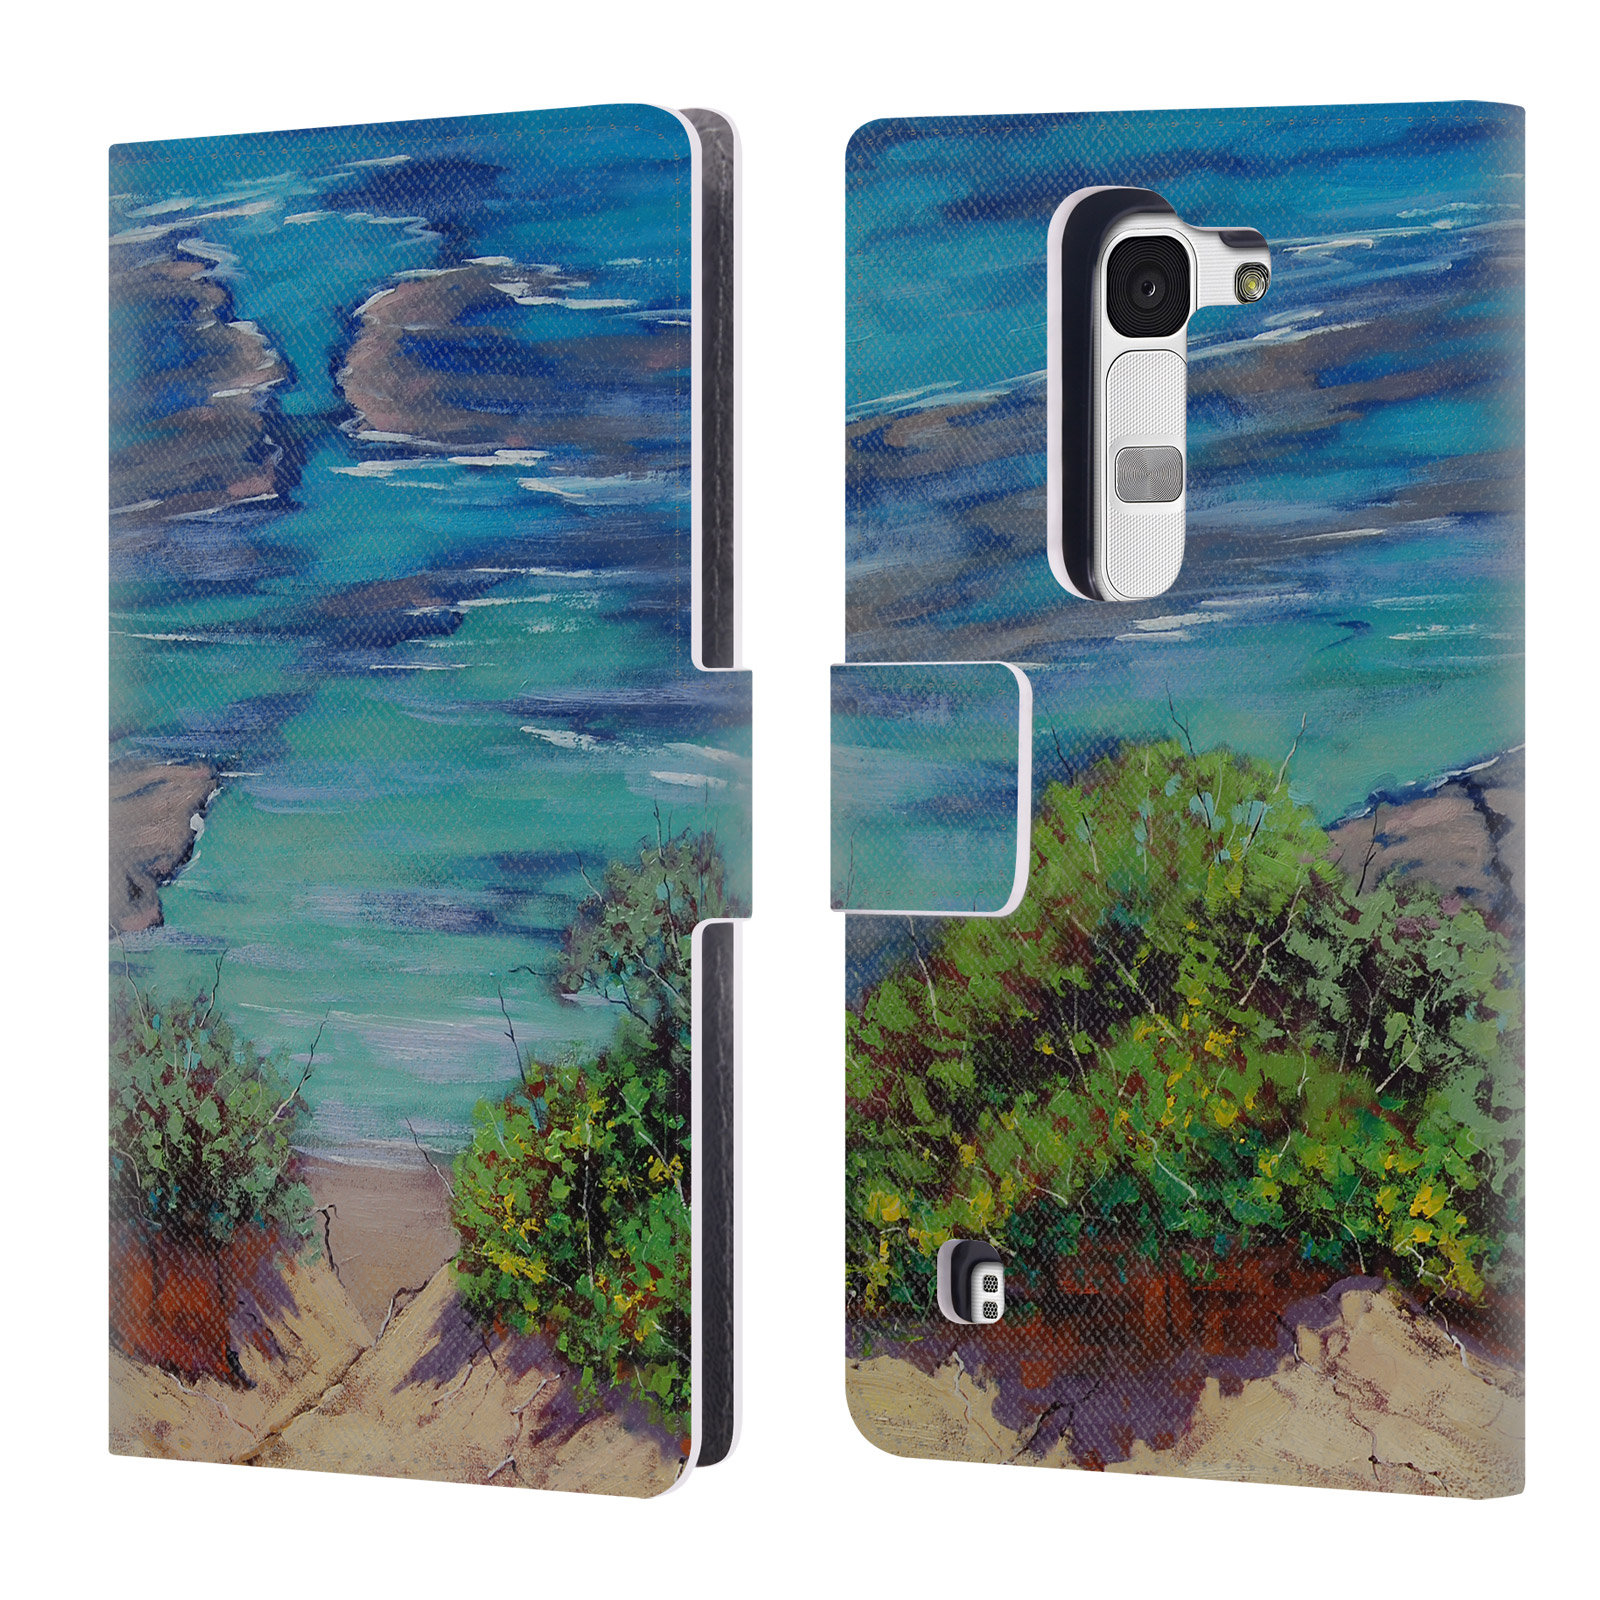 OFFICIAL-GRAHAM-GERCKEN-SUMMER-LEATHER-BOOK-WALLET-CASE-COVER-FOR-LG-PHONES-2